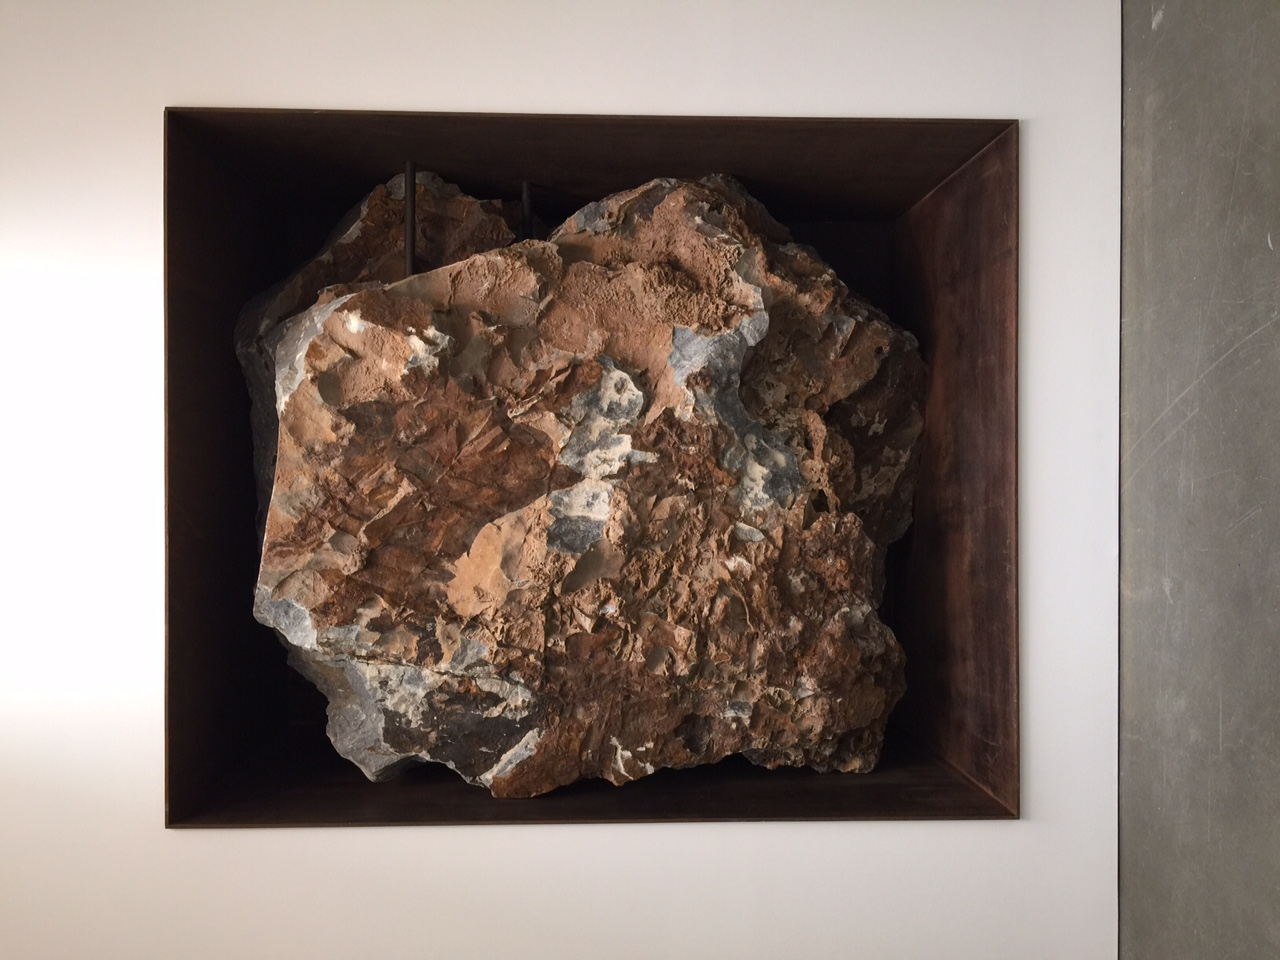 Michael Heizer at Gagosian Gallery